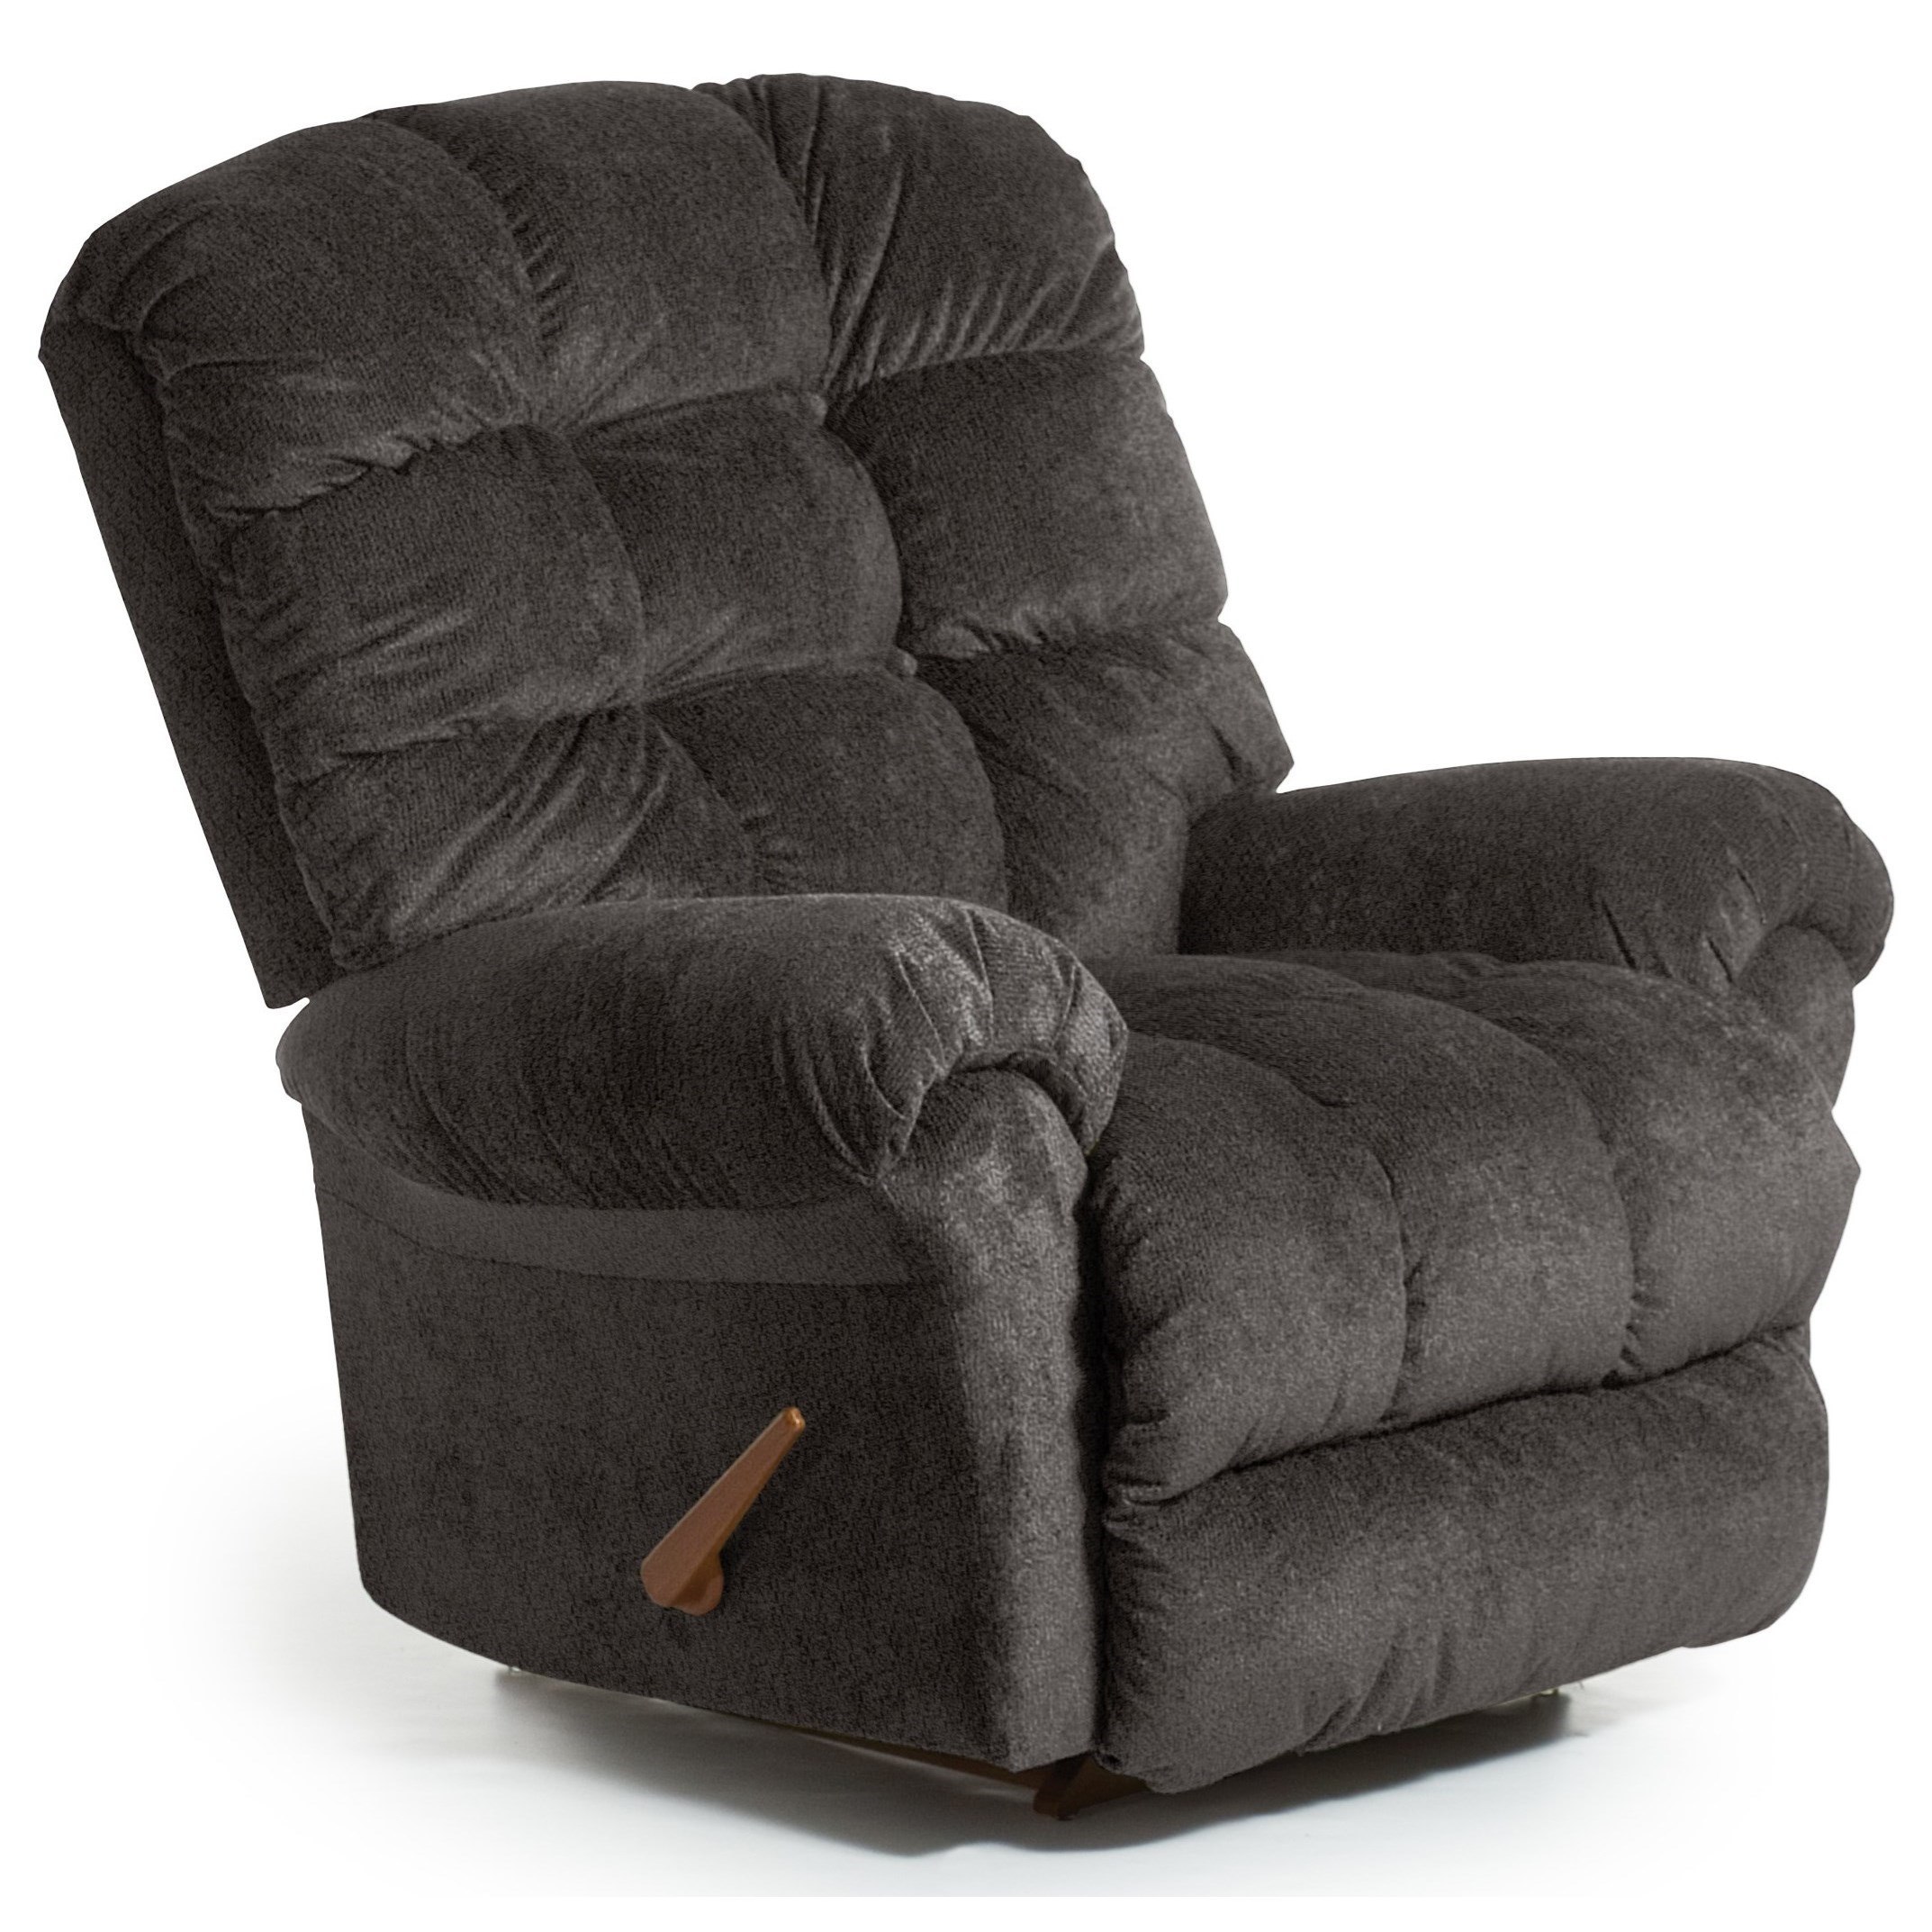 Recliners - BodyRest BodyRest Rocker Recliner by Best Home Furnishings at Steger's Furniture